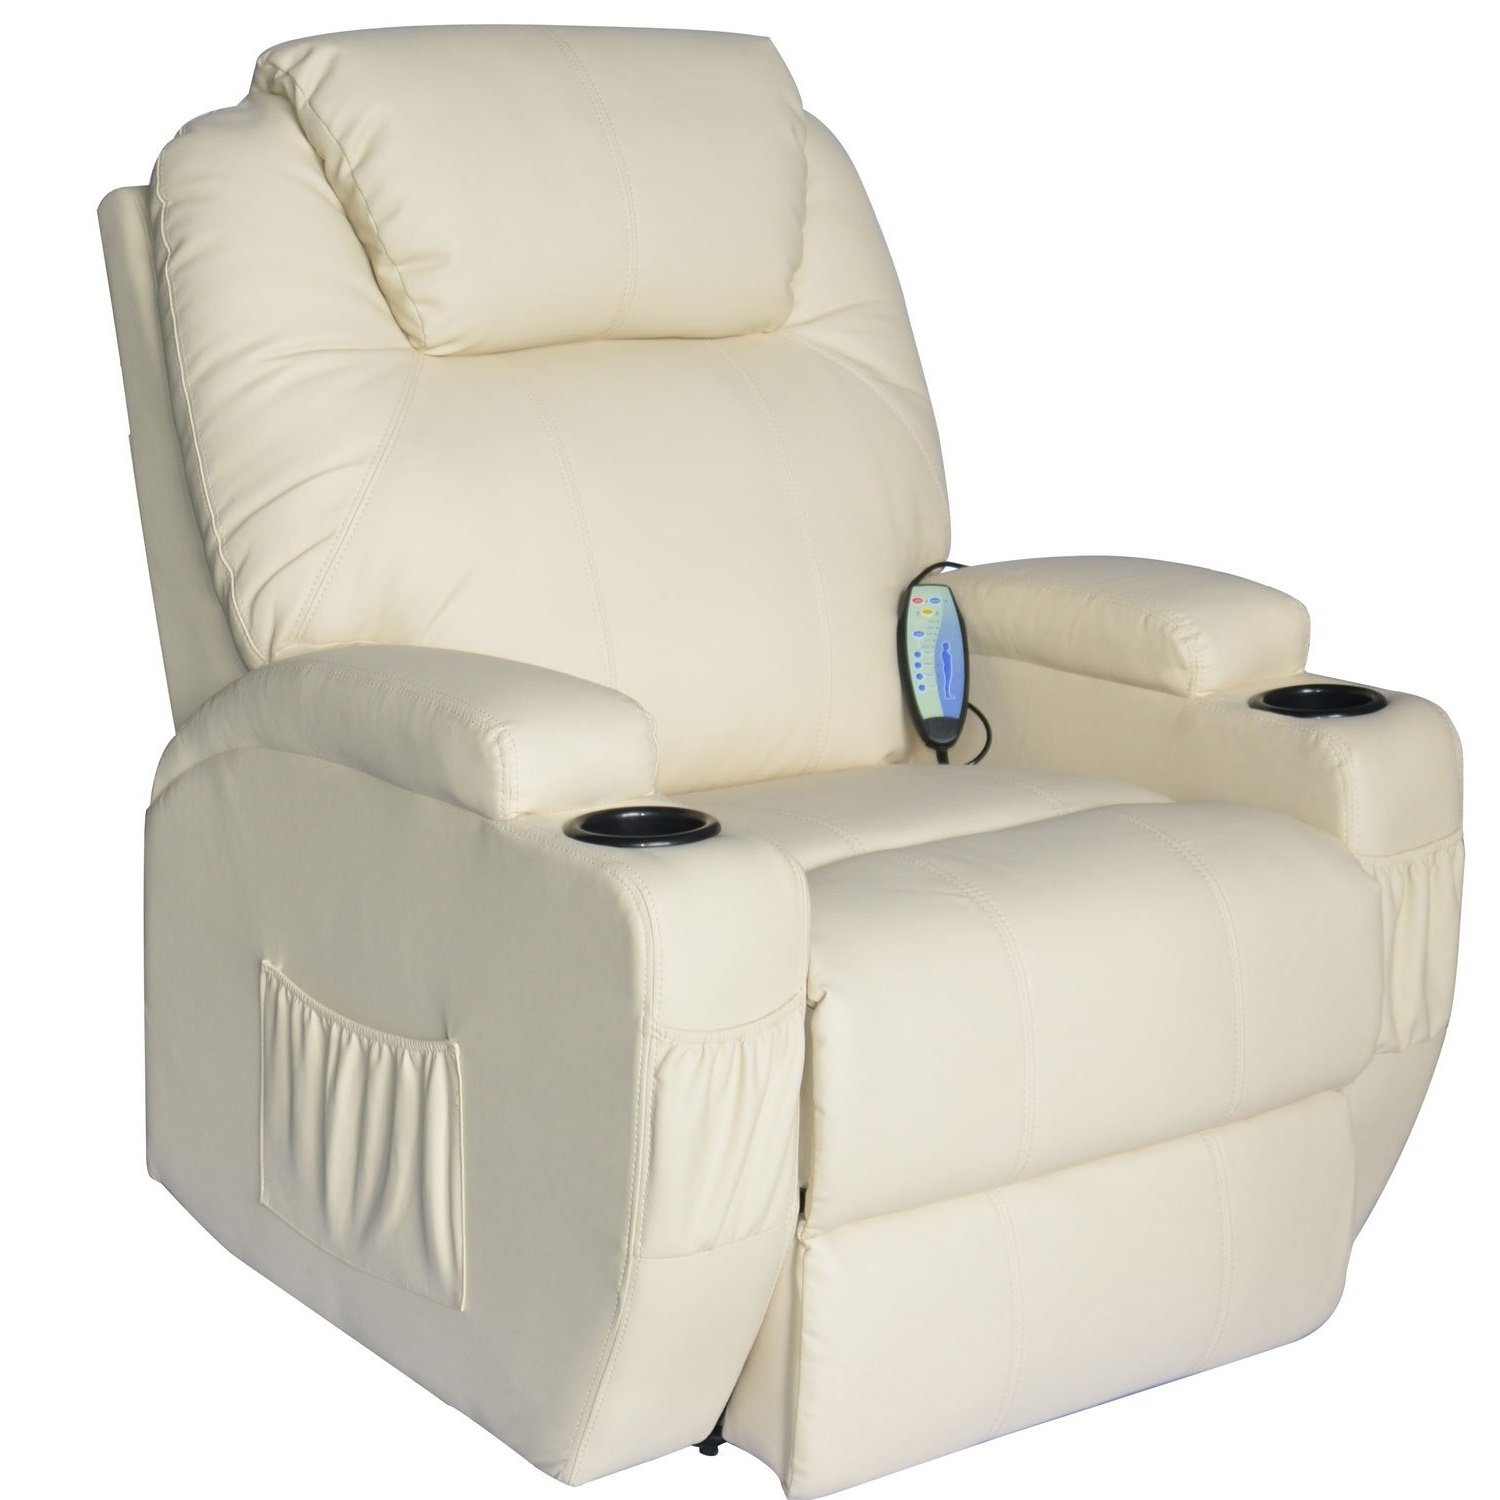 Cavendish electric recliner chair with heat massage choice of